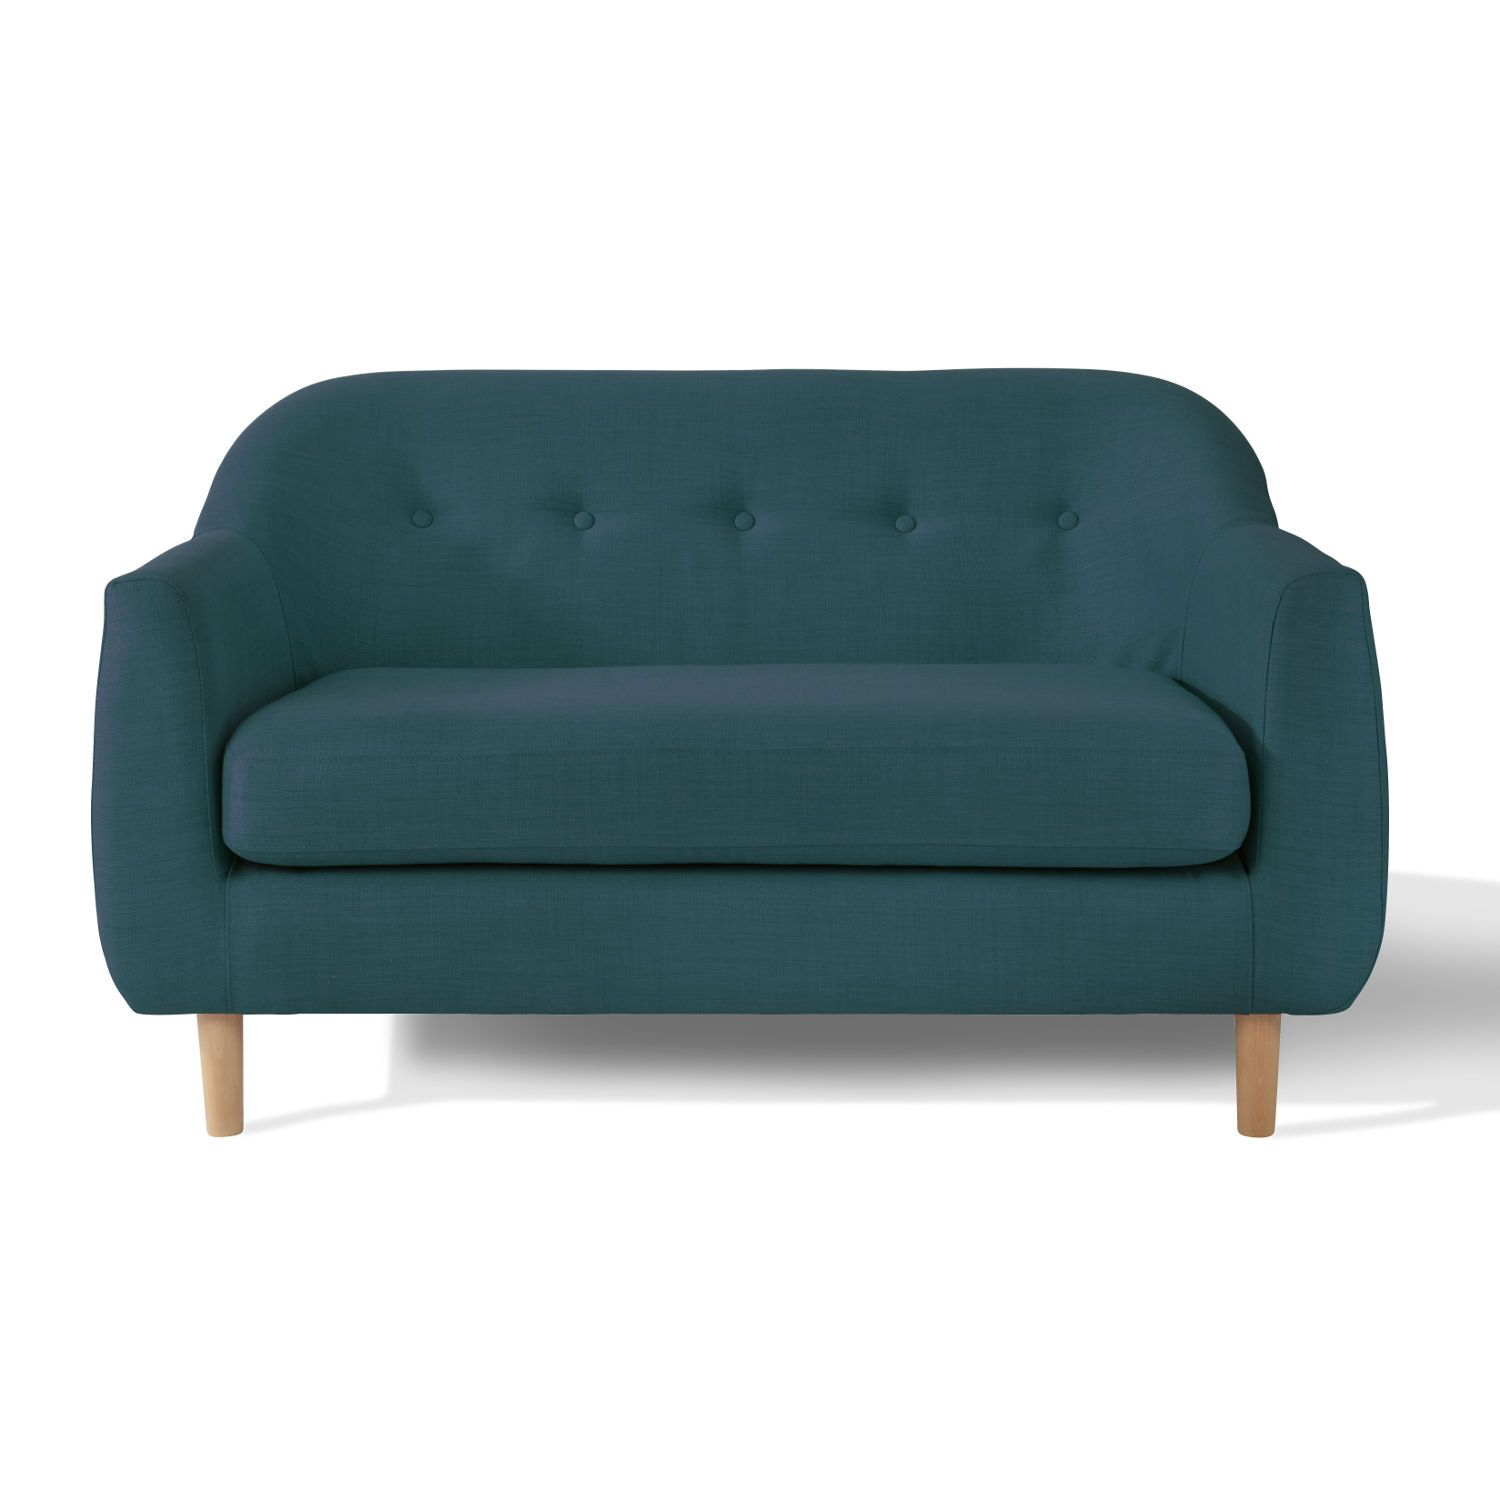 Monty 2 Seater Sofa Next Day Delivery